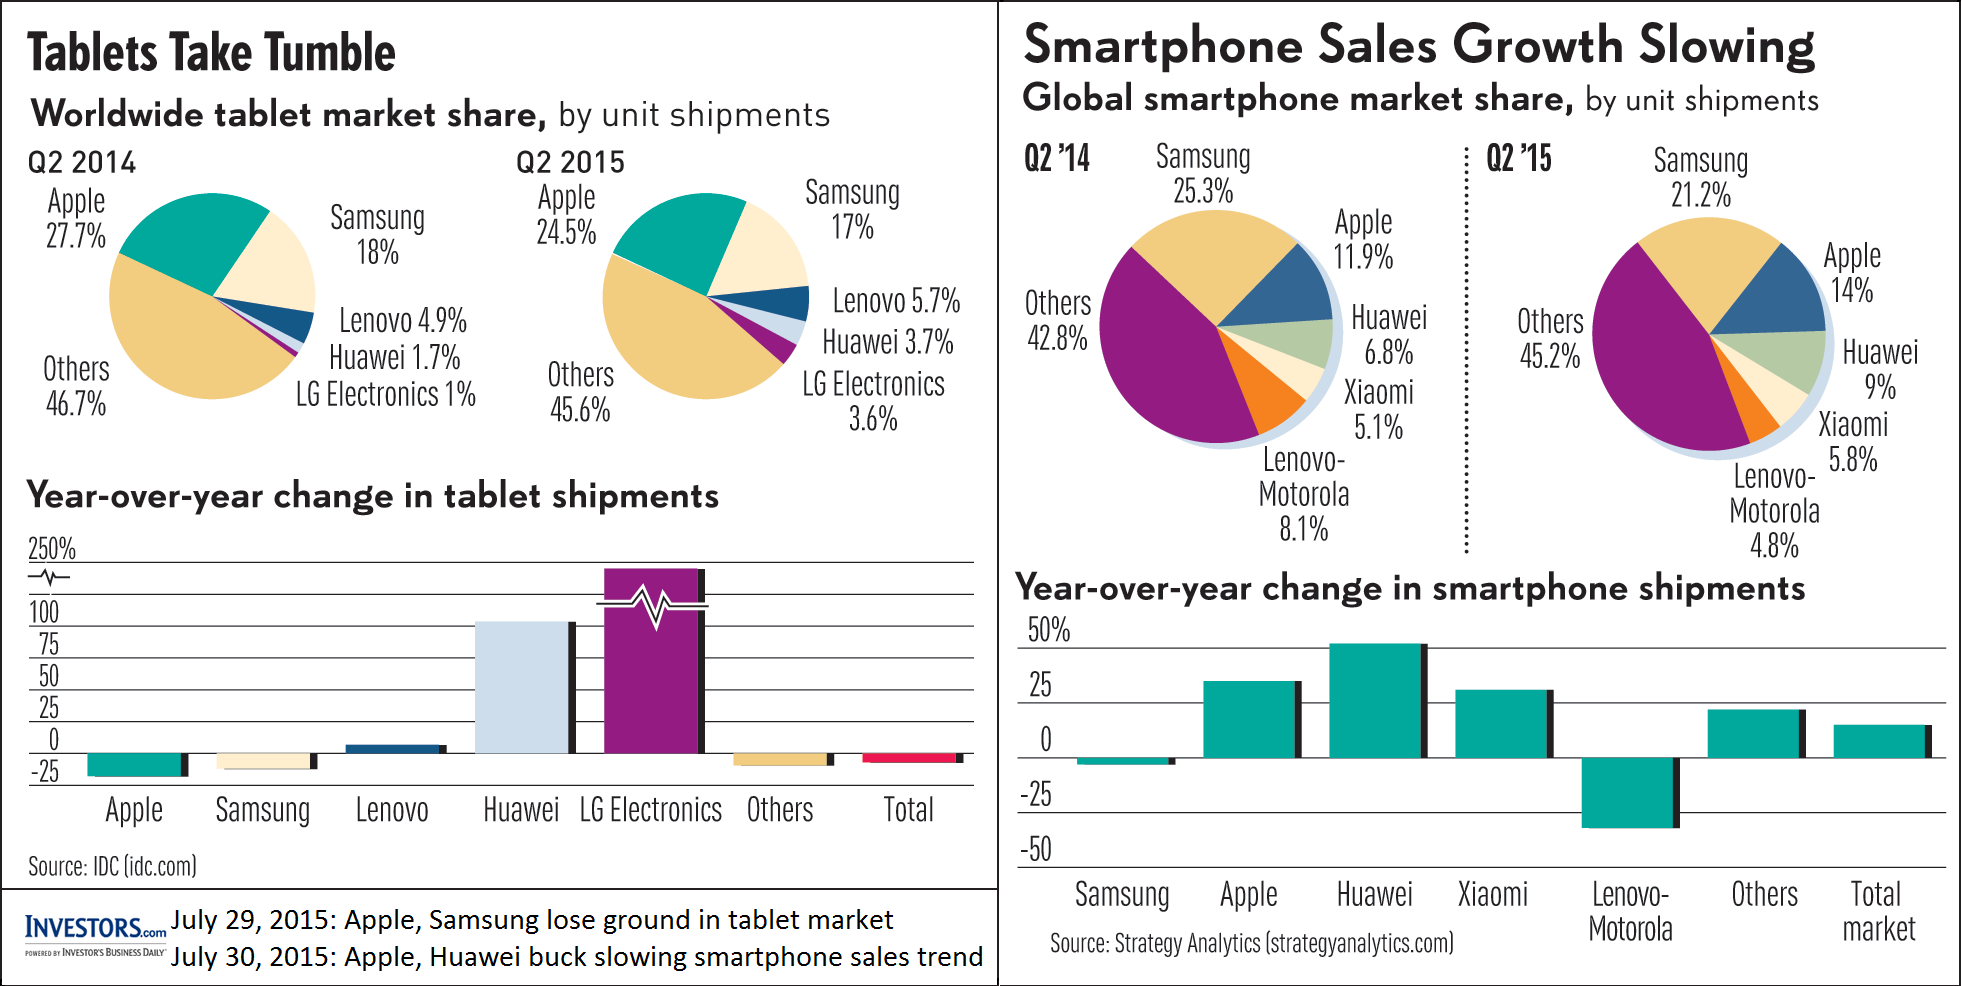 industry life cycle with the smartphone and tablet industry Envisioning itself as a global leader in most industries, samsung booked  short  product life cycles in the consumer electronics industry, samsung  in the high  growth categories of smartphones, tablets and smart wearables.